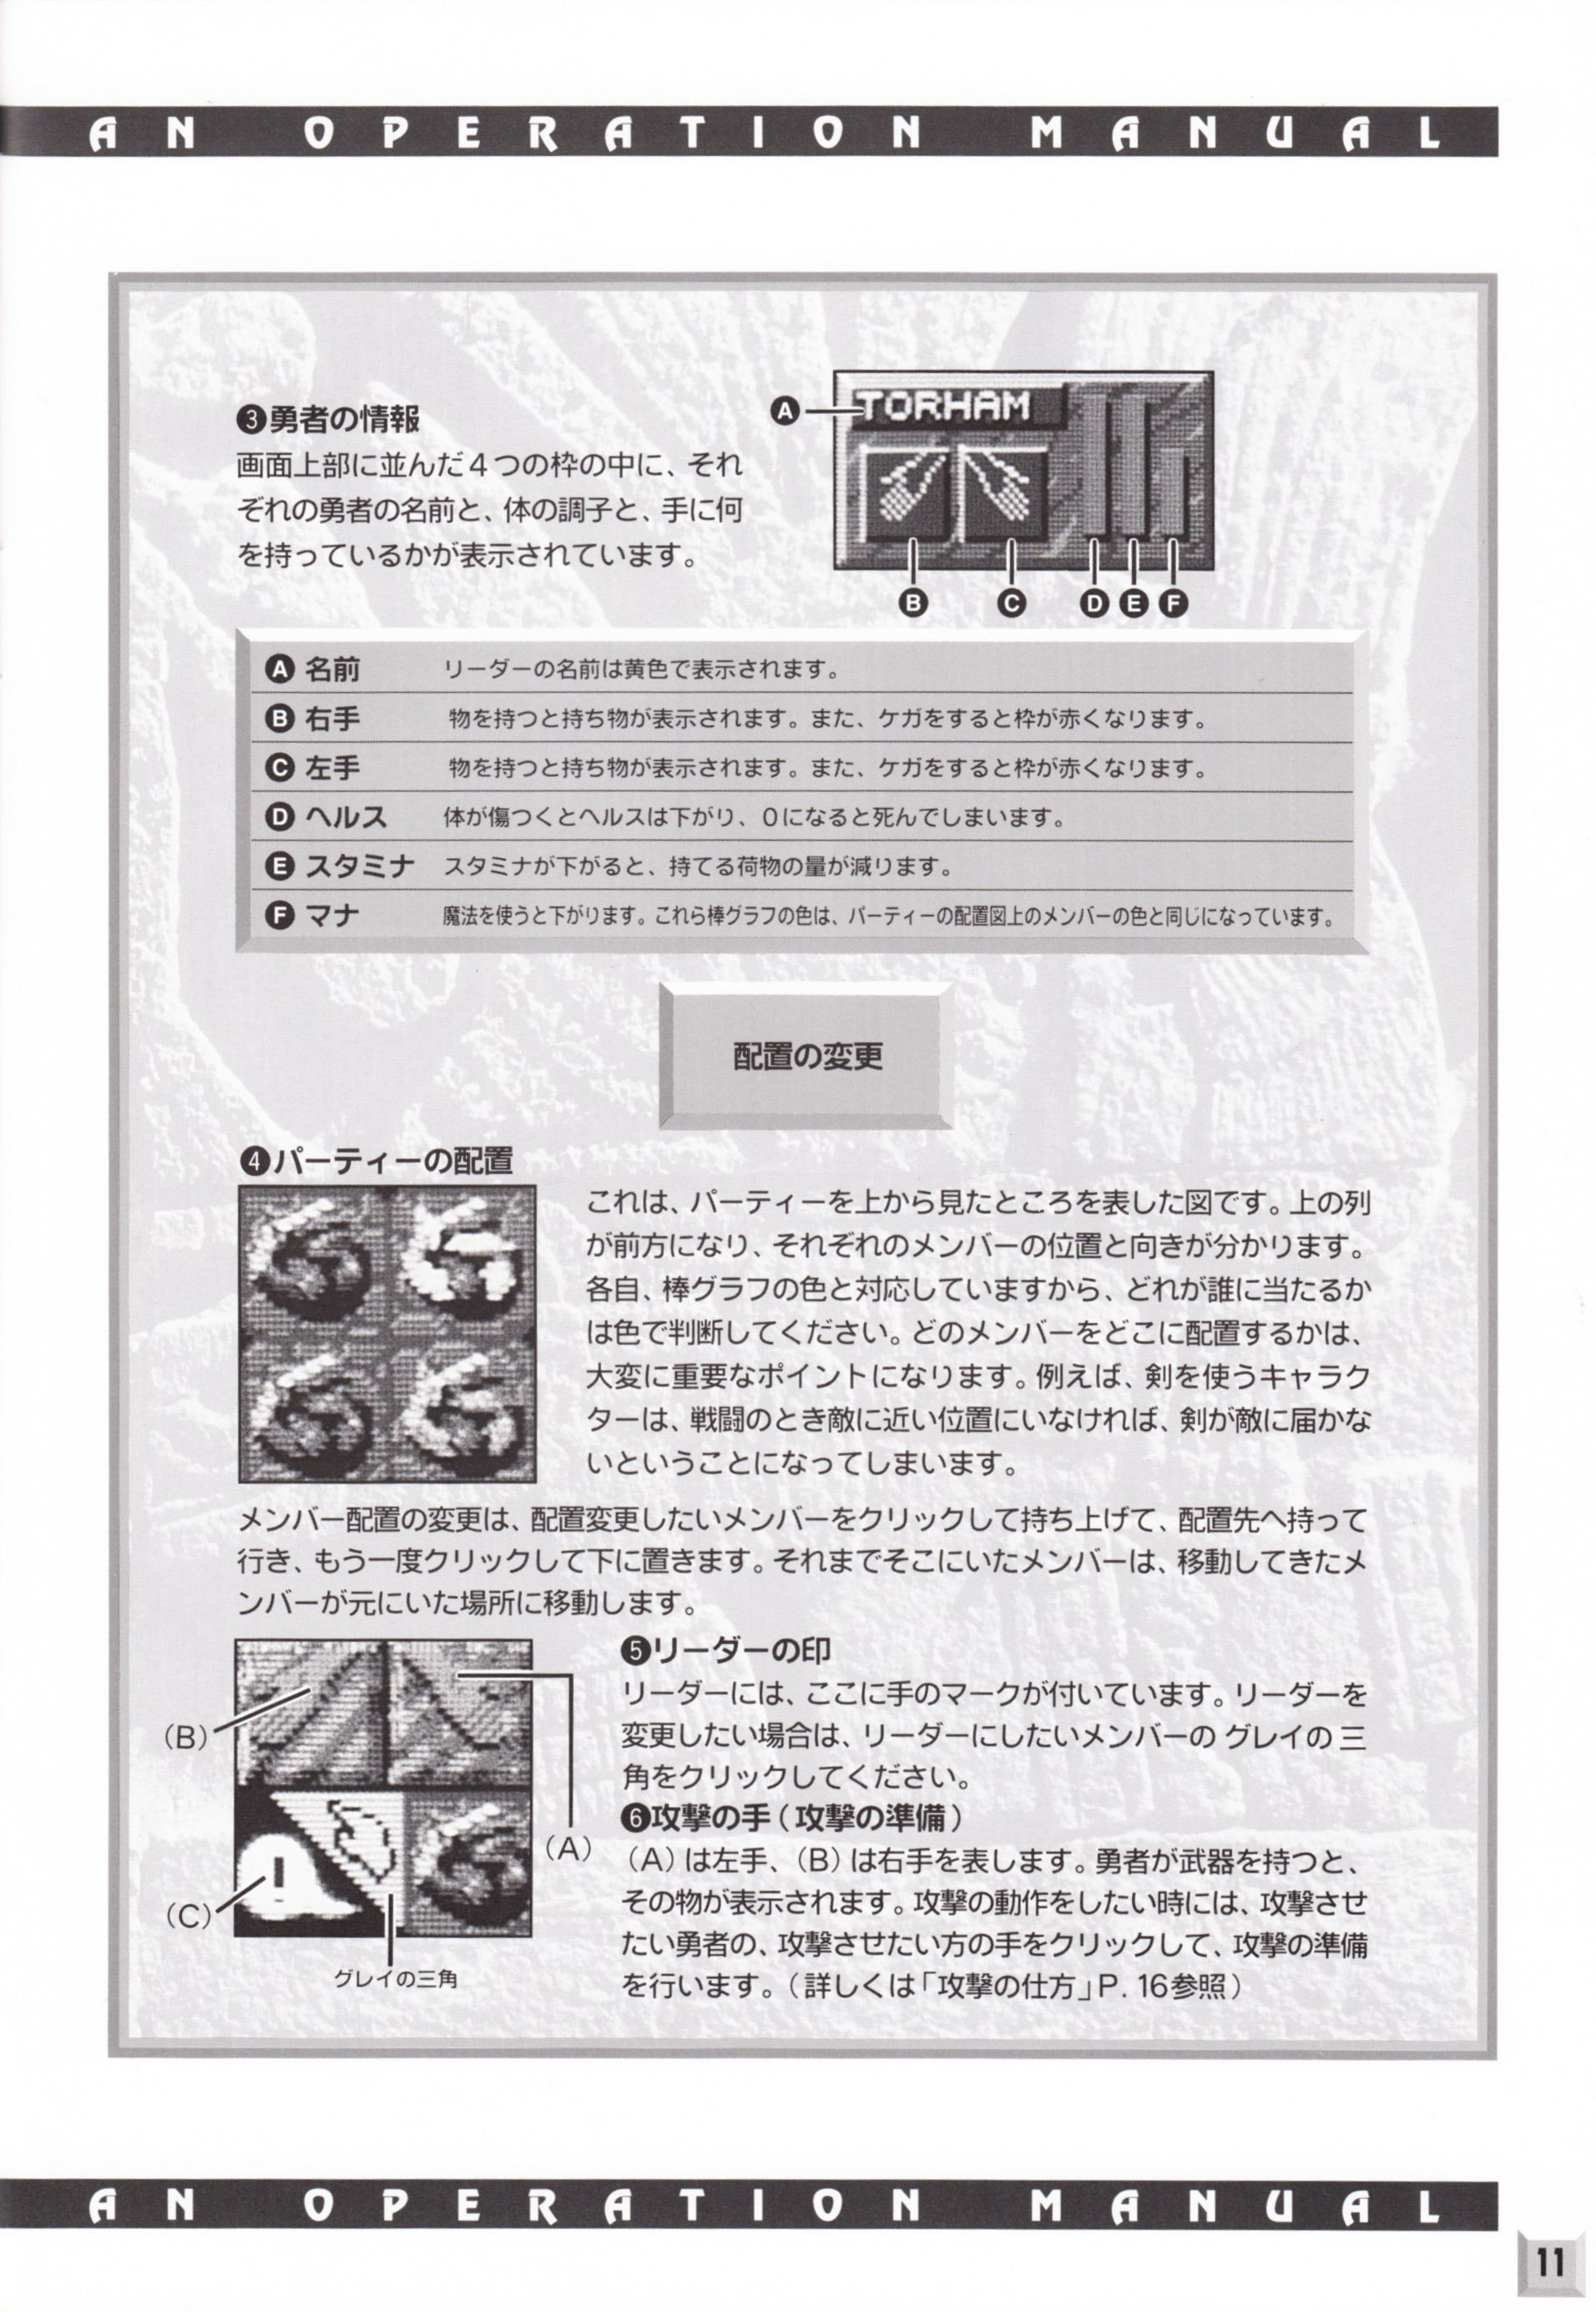 Game - Dungeon Master II - JP - PC-9801 - 3.5-inch - An Operation Manual - Page 013 - Scan